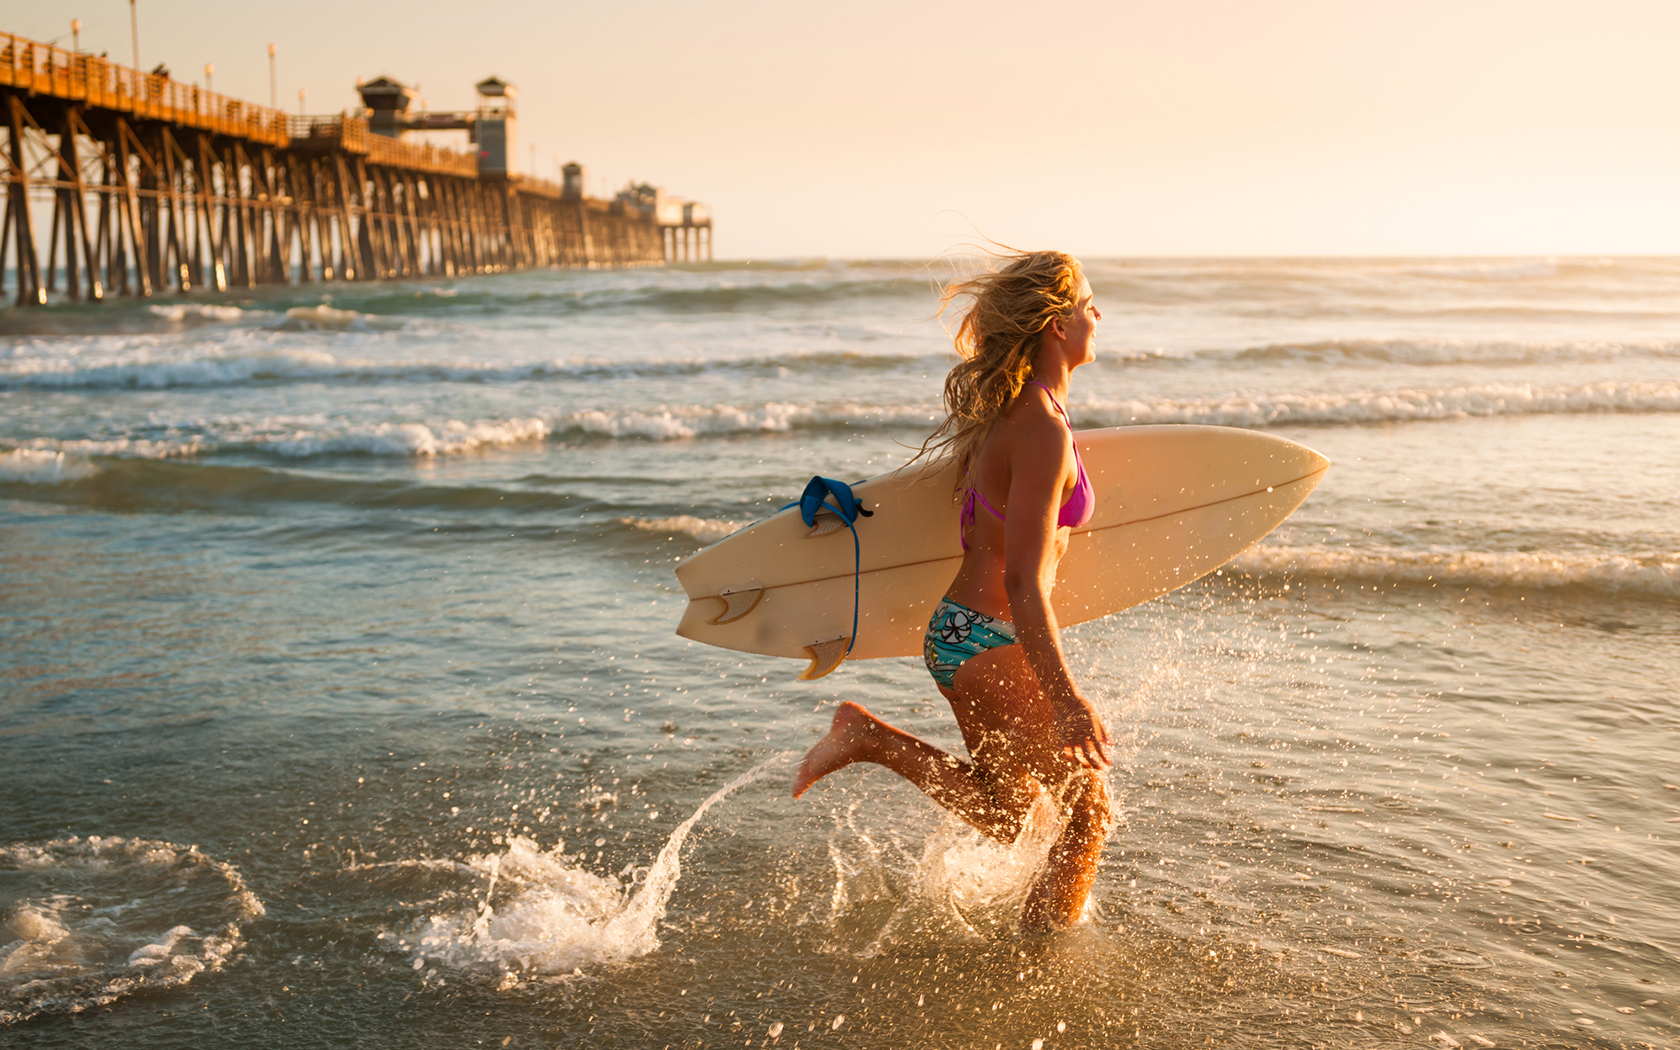 a woman on the beach with a surfboard